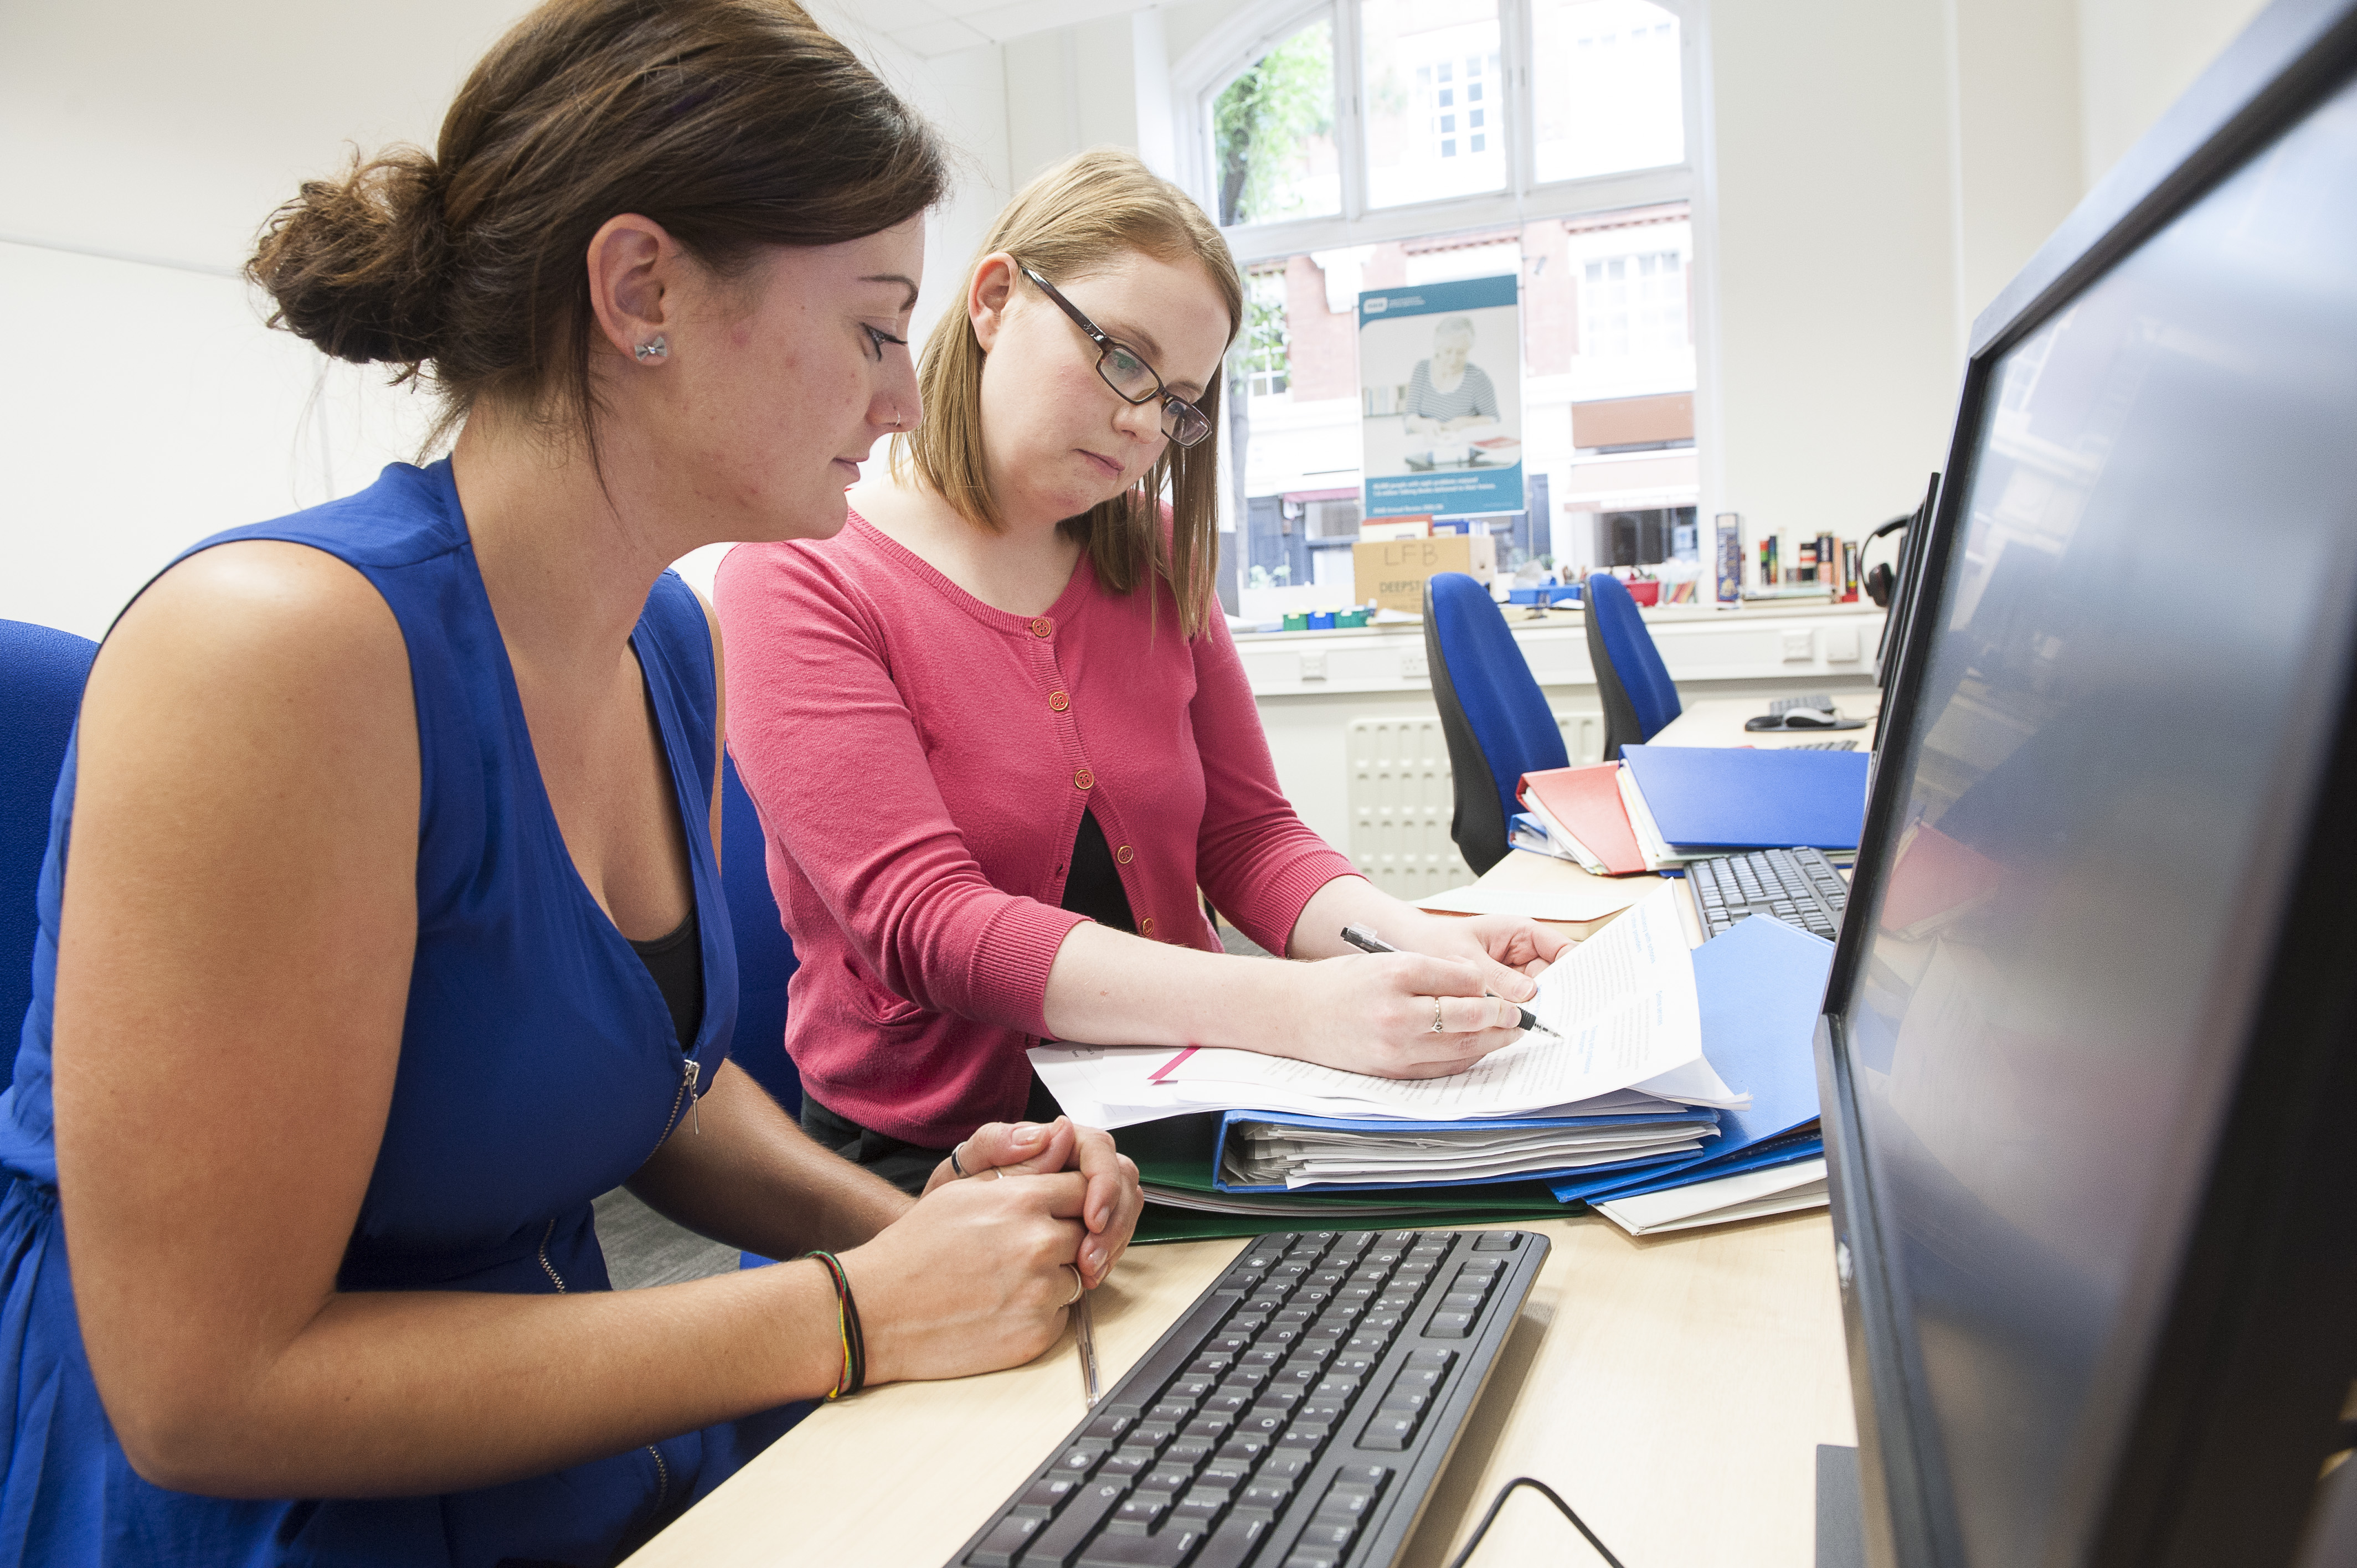 Course Image DACPD93-0920 - Developing Writing Skills in Adults with Dyslexia